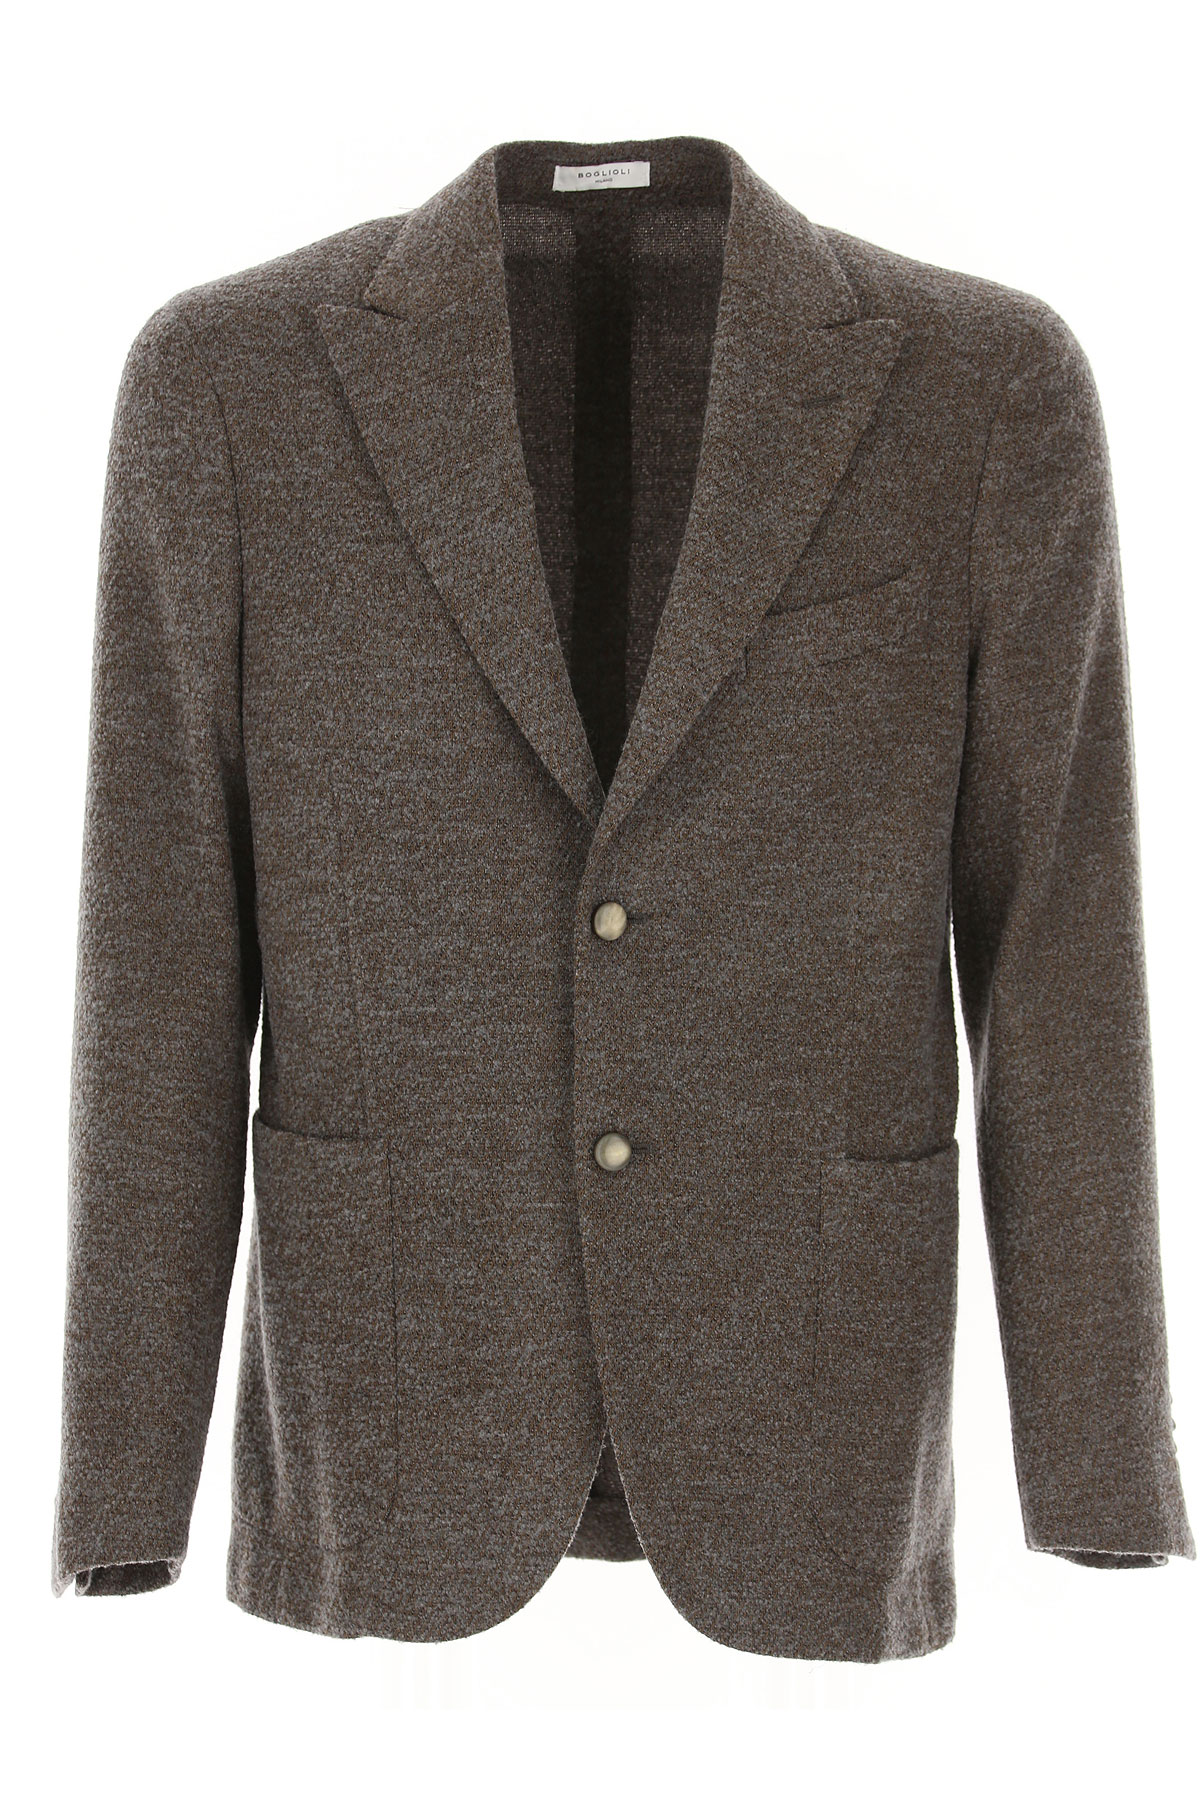 Boglioli Blazer for Men, Sport Coat On Sale, Melange Beige, Wool, 2019, L M